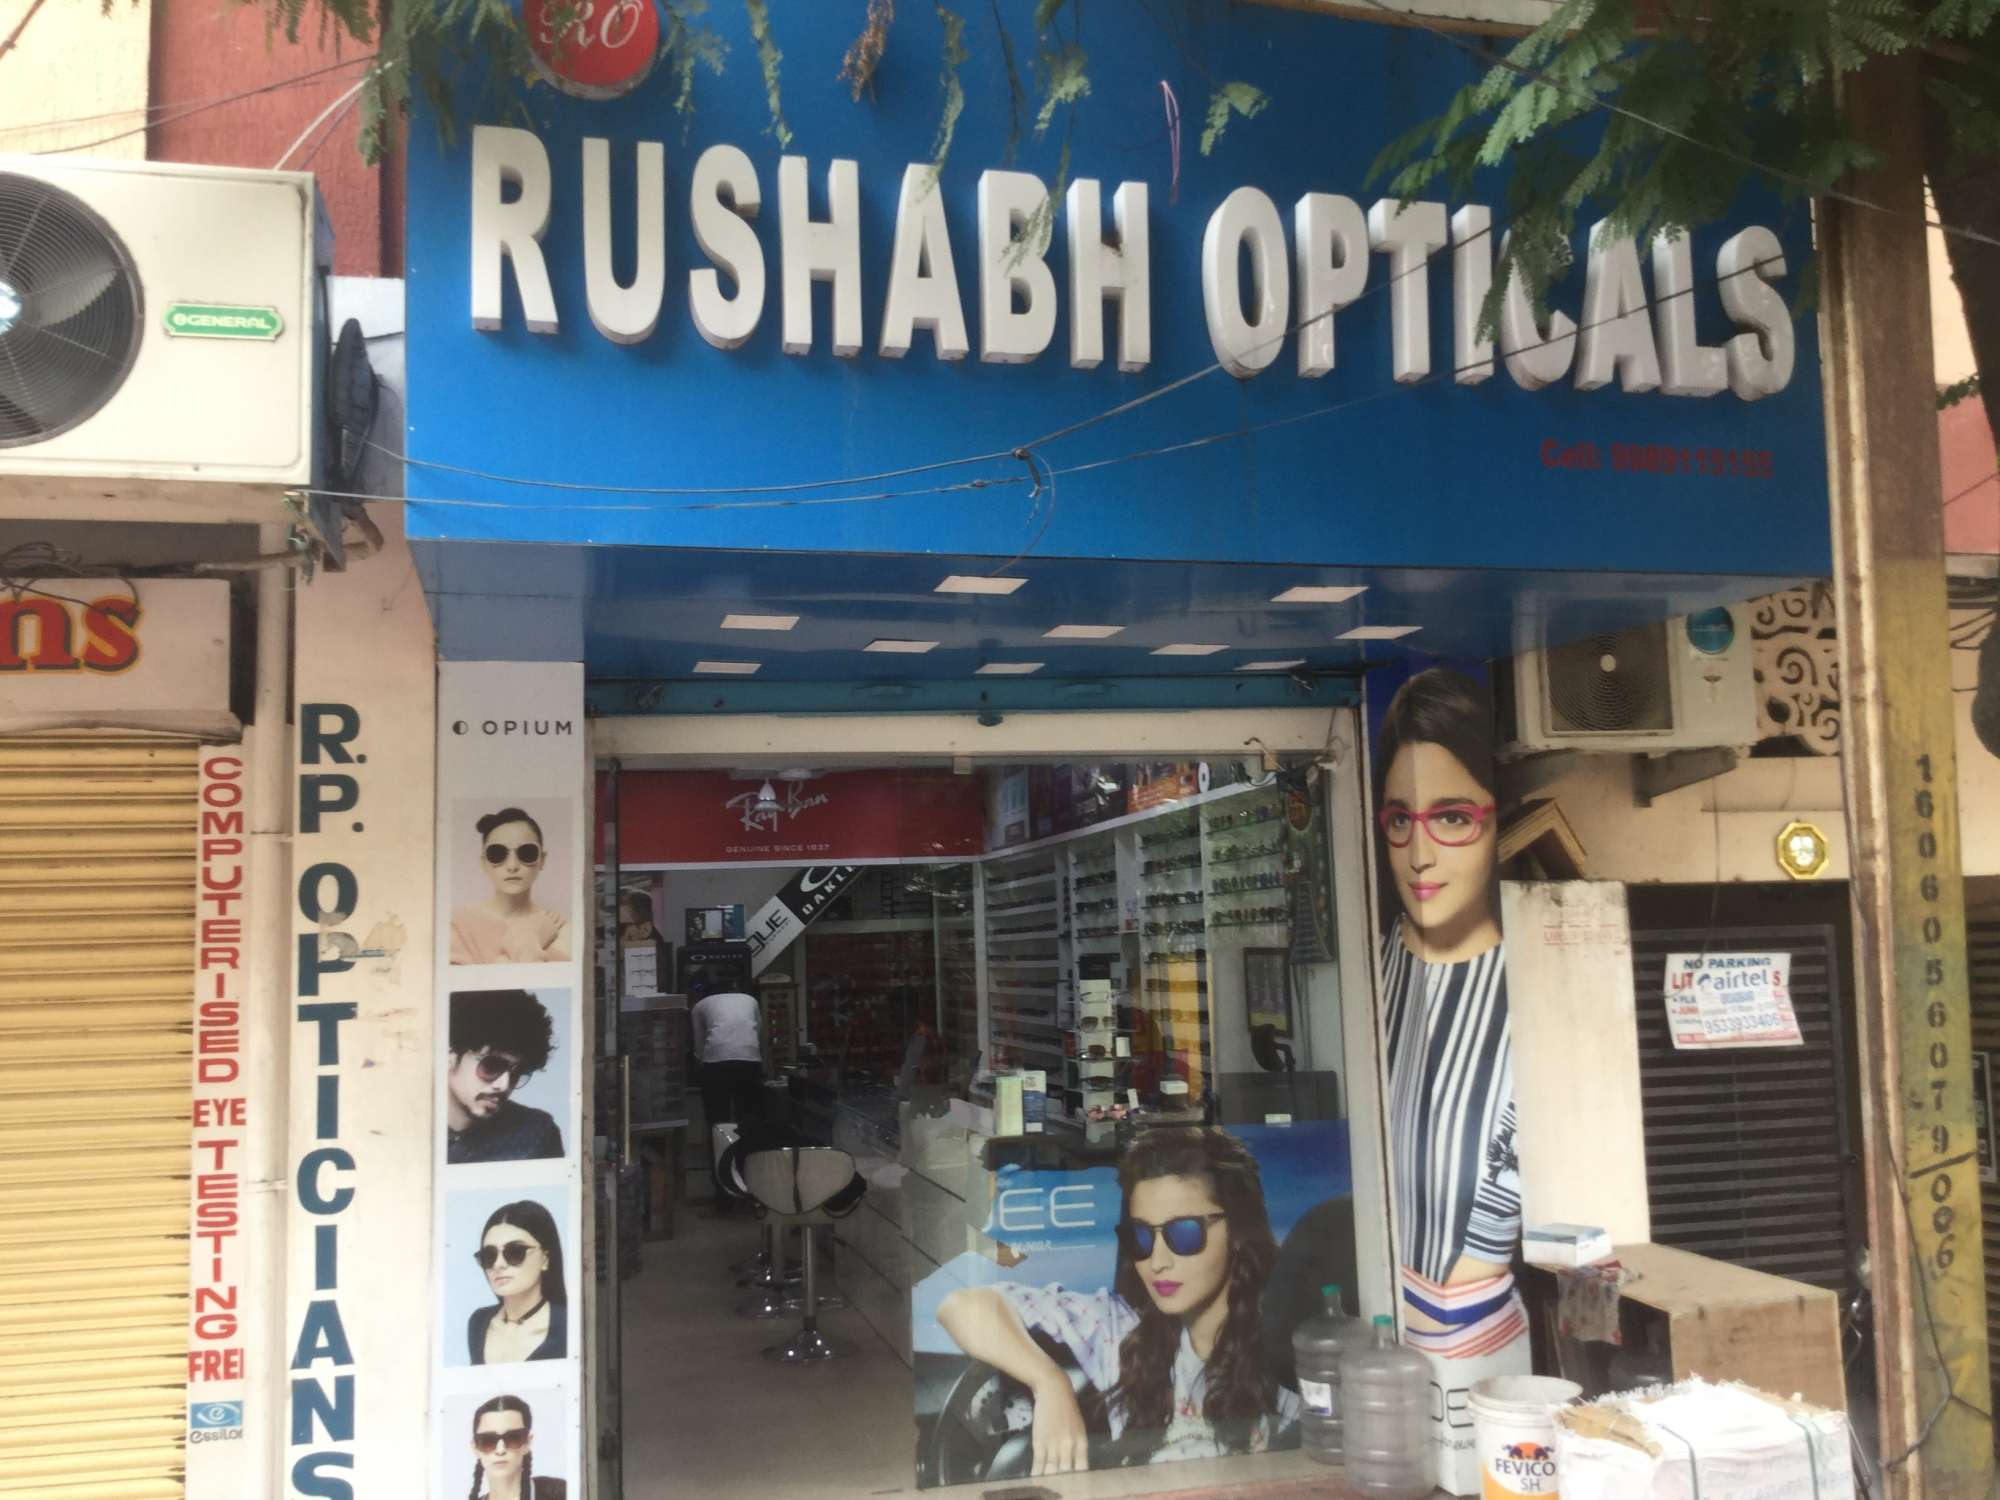 ebff5b46cf23 Top 100 Crizal Spectacle Lens Dealers in Hyderabad - Best Crizal ...